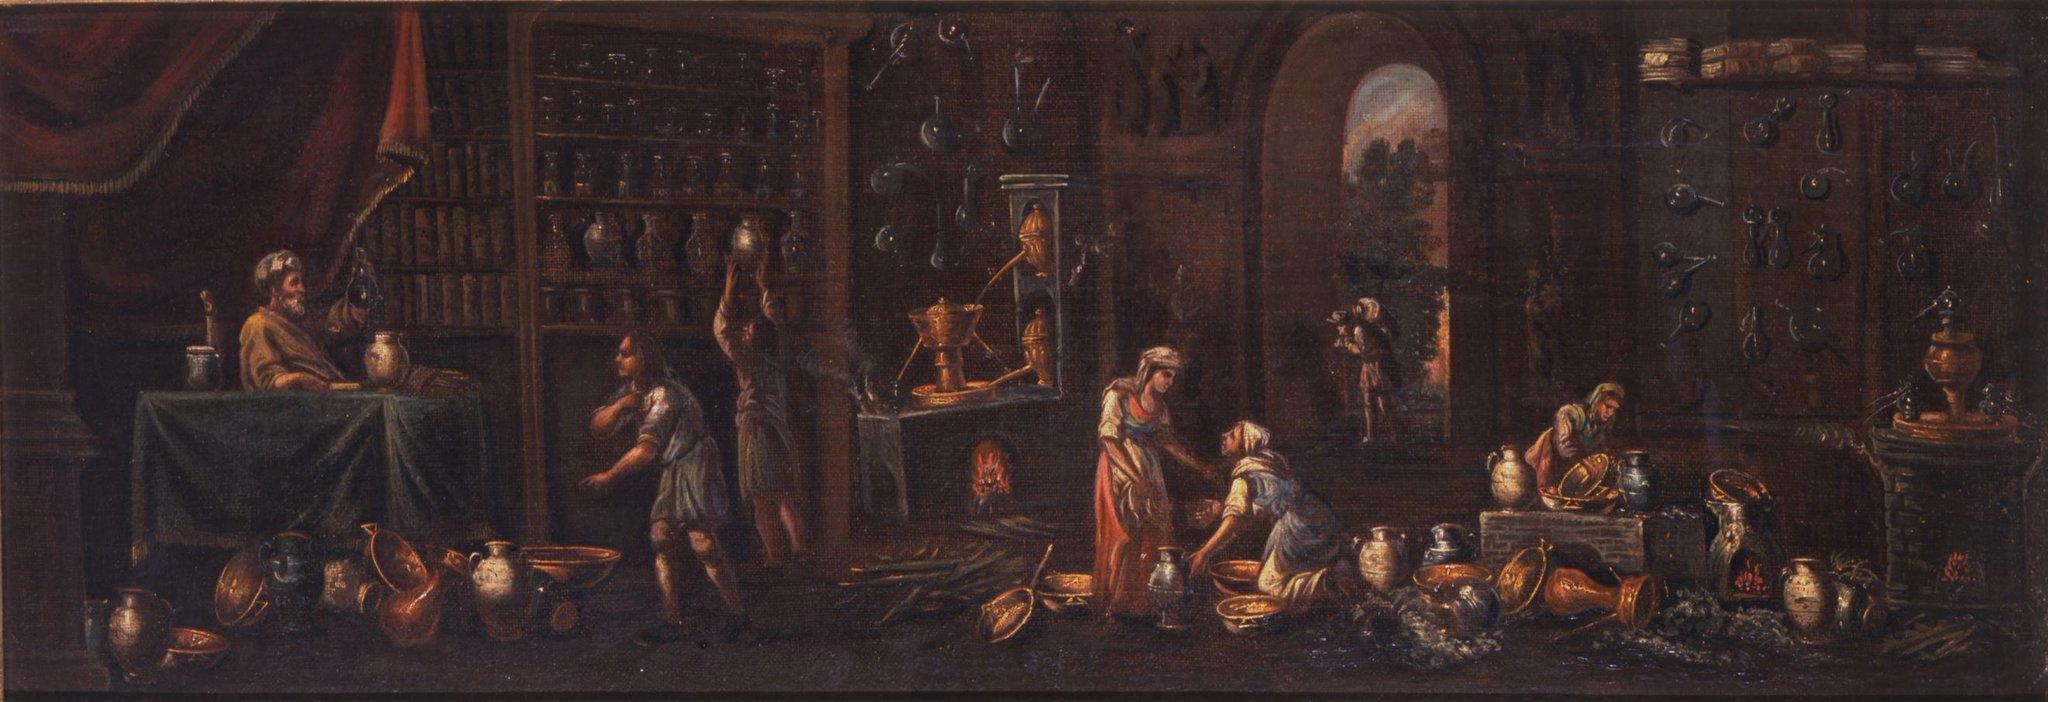 In this painting, women hurry around the apothecary, distilling plants and herbs into medicines and tonics #MuseumMonday #WomensHistoryMonth https://t.co/mqYYqDKnlR